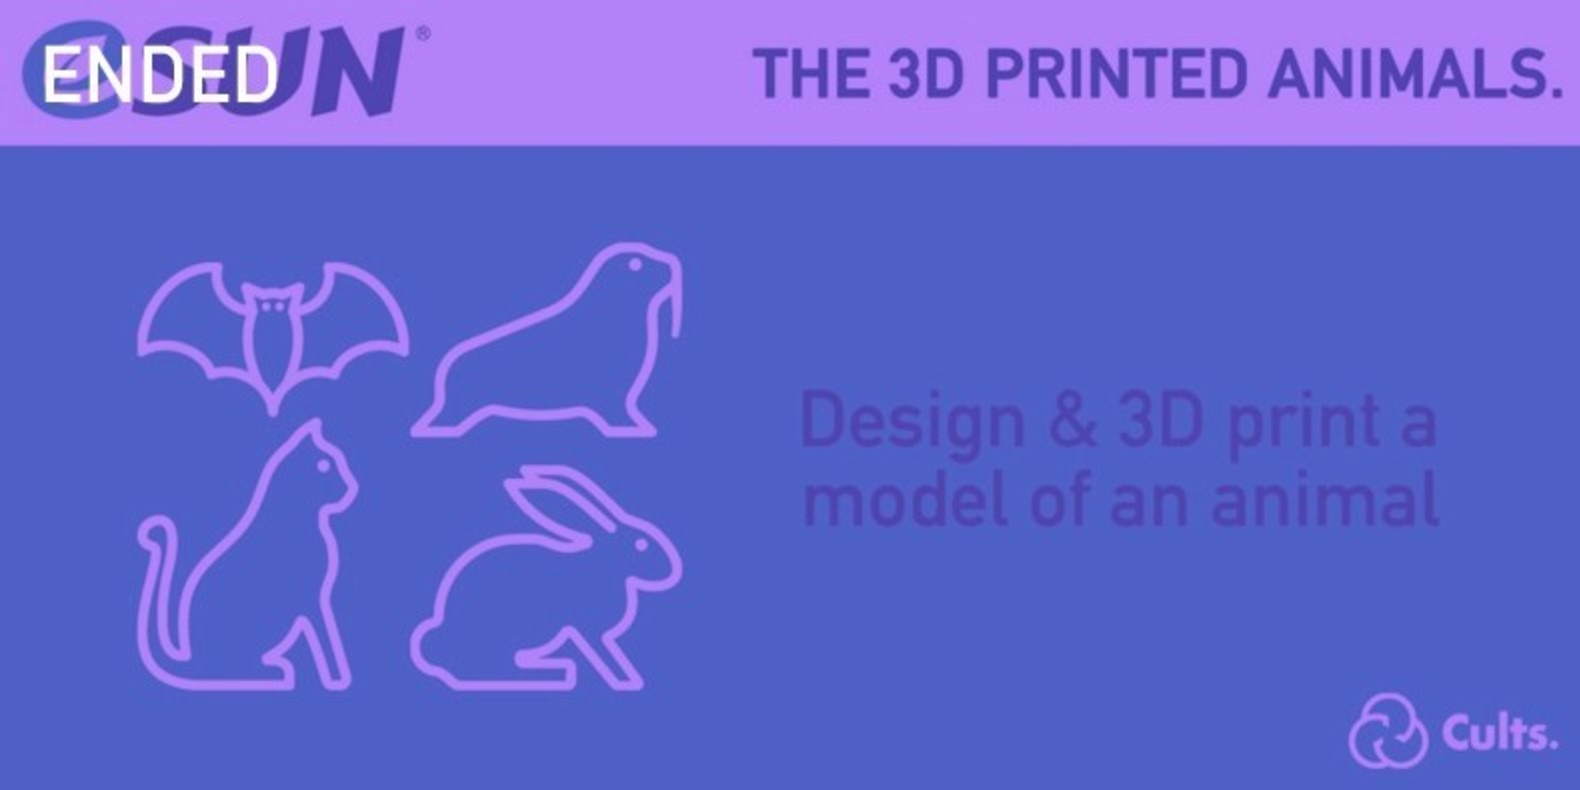 The challenge of design and 3D printing about Animals